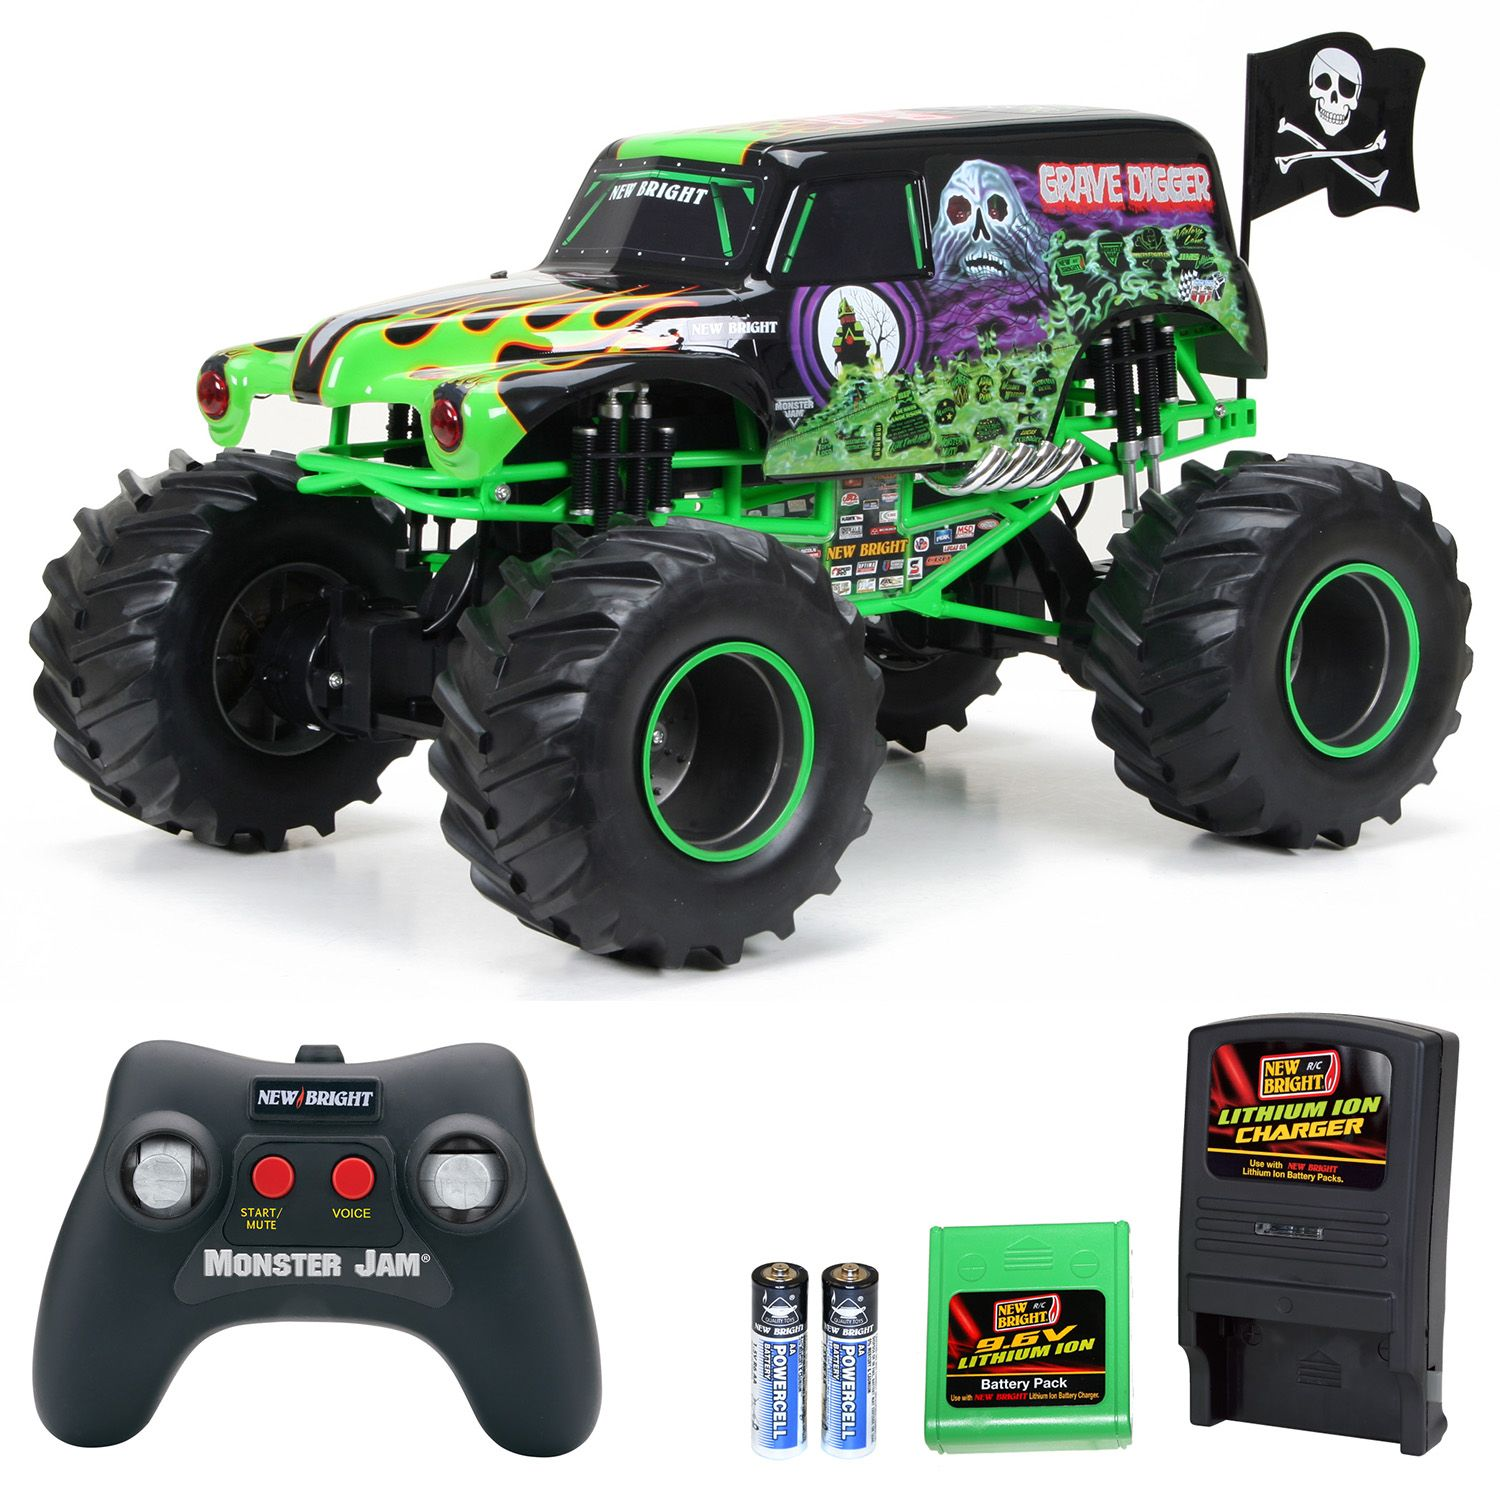 radio controlled monster truck with 171962855522 on Pictures videos likewise Terrier Tank Swiss Army Knife Of  bat Vehicles additionally G 24922 model Revell Rc revell radio controlled dump truck also Watch further 339724.